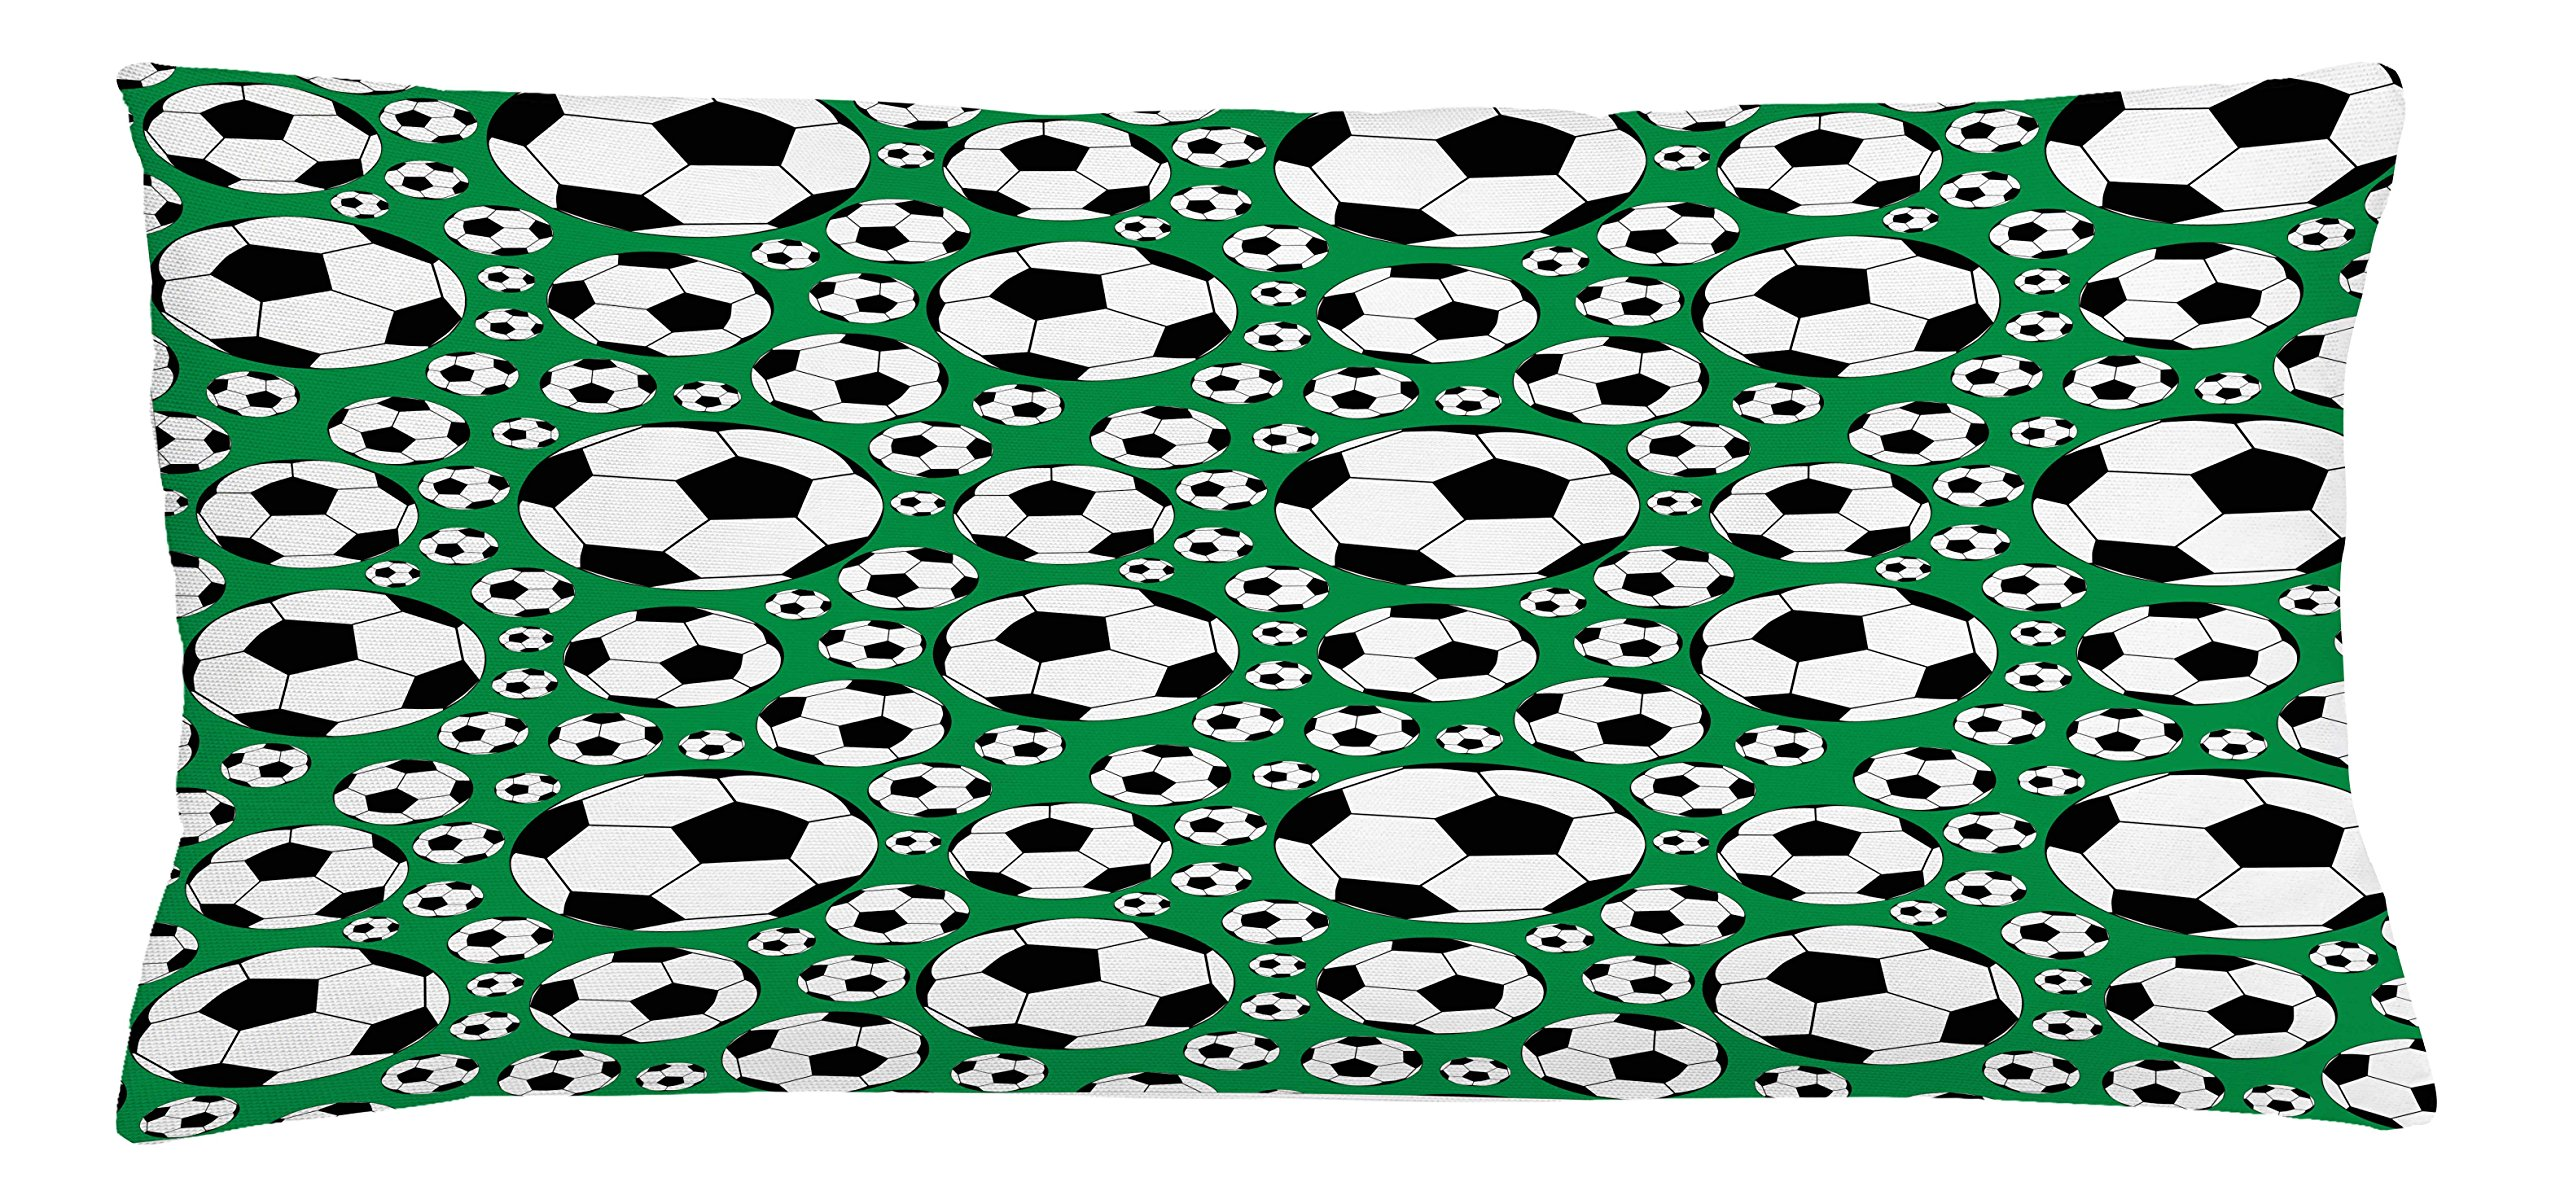 Ambesonne Soccer Throw Pillow Cushion Cover, Various Sizes Footballs Pattern Active Lifestyle Popular Sport from Europe, Decorative Square Accent Pillow Case, 36 X 16 inches, Green Black White